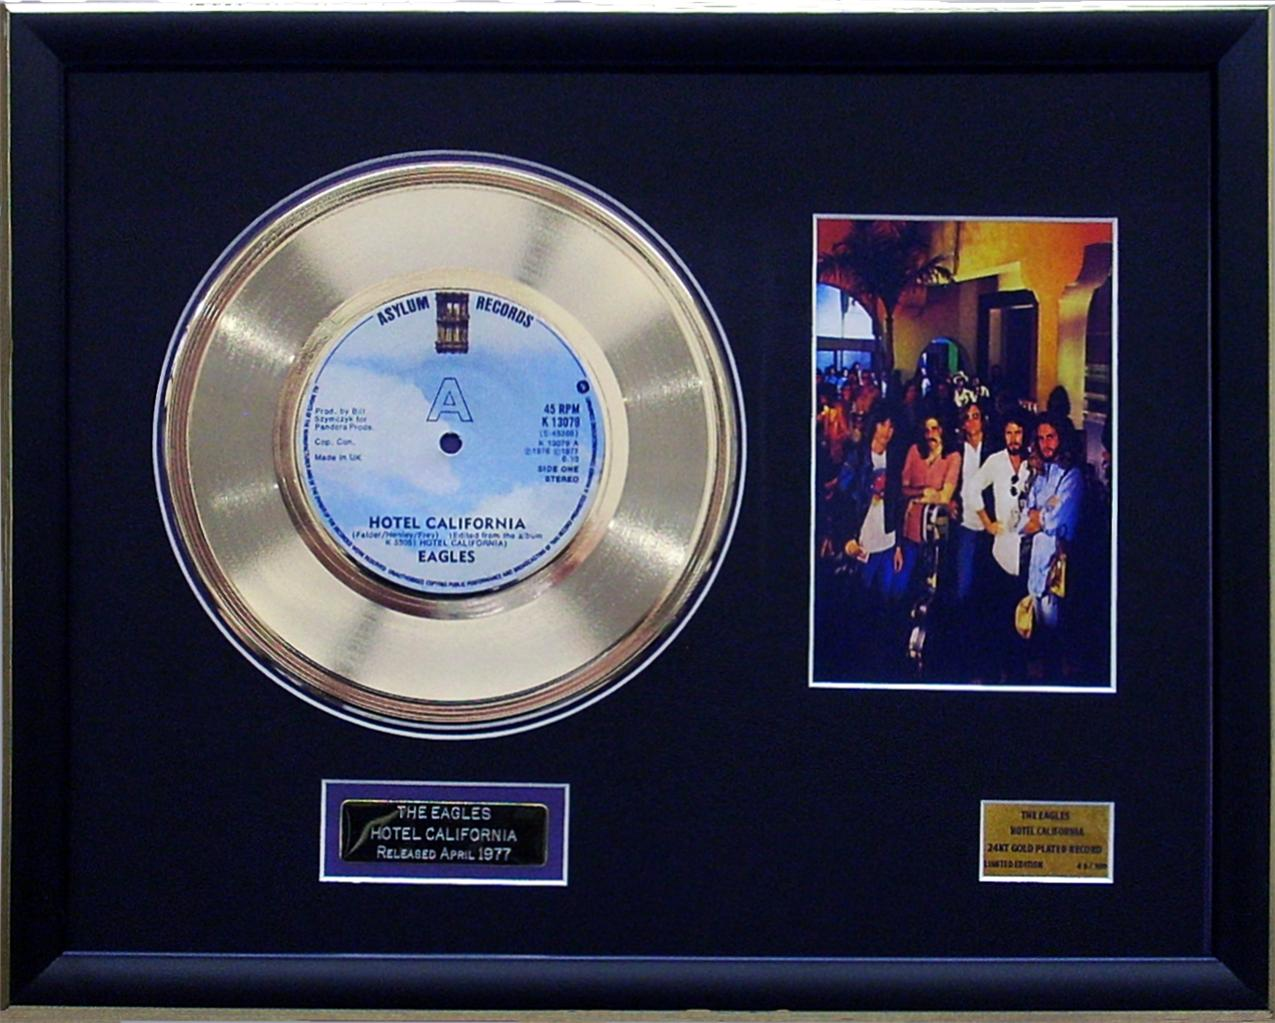 The-Eagles-Hotel-California-Limited-Edition-Framed-24KT-Gold-Plated-Record